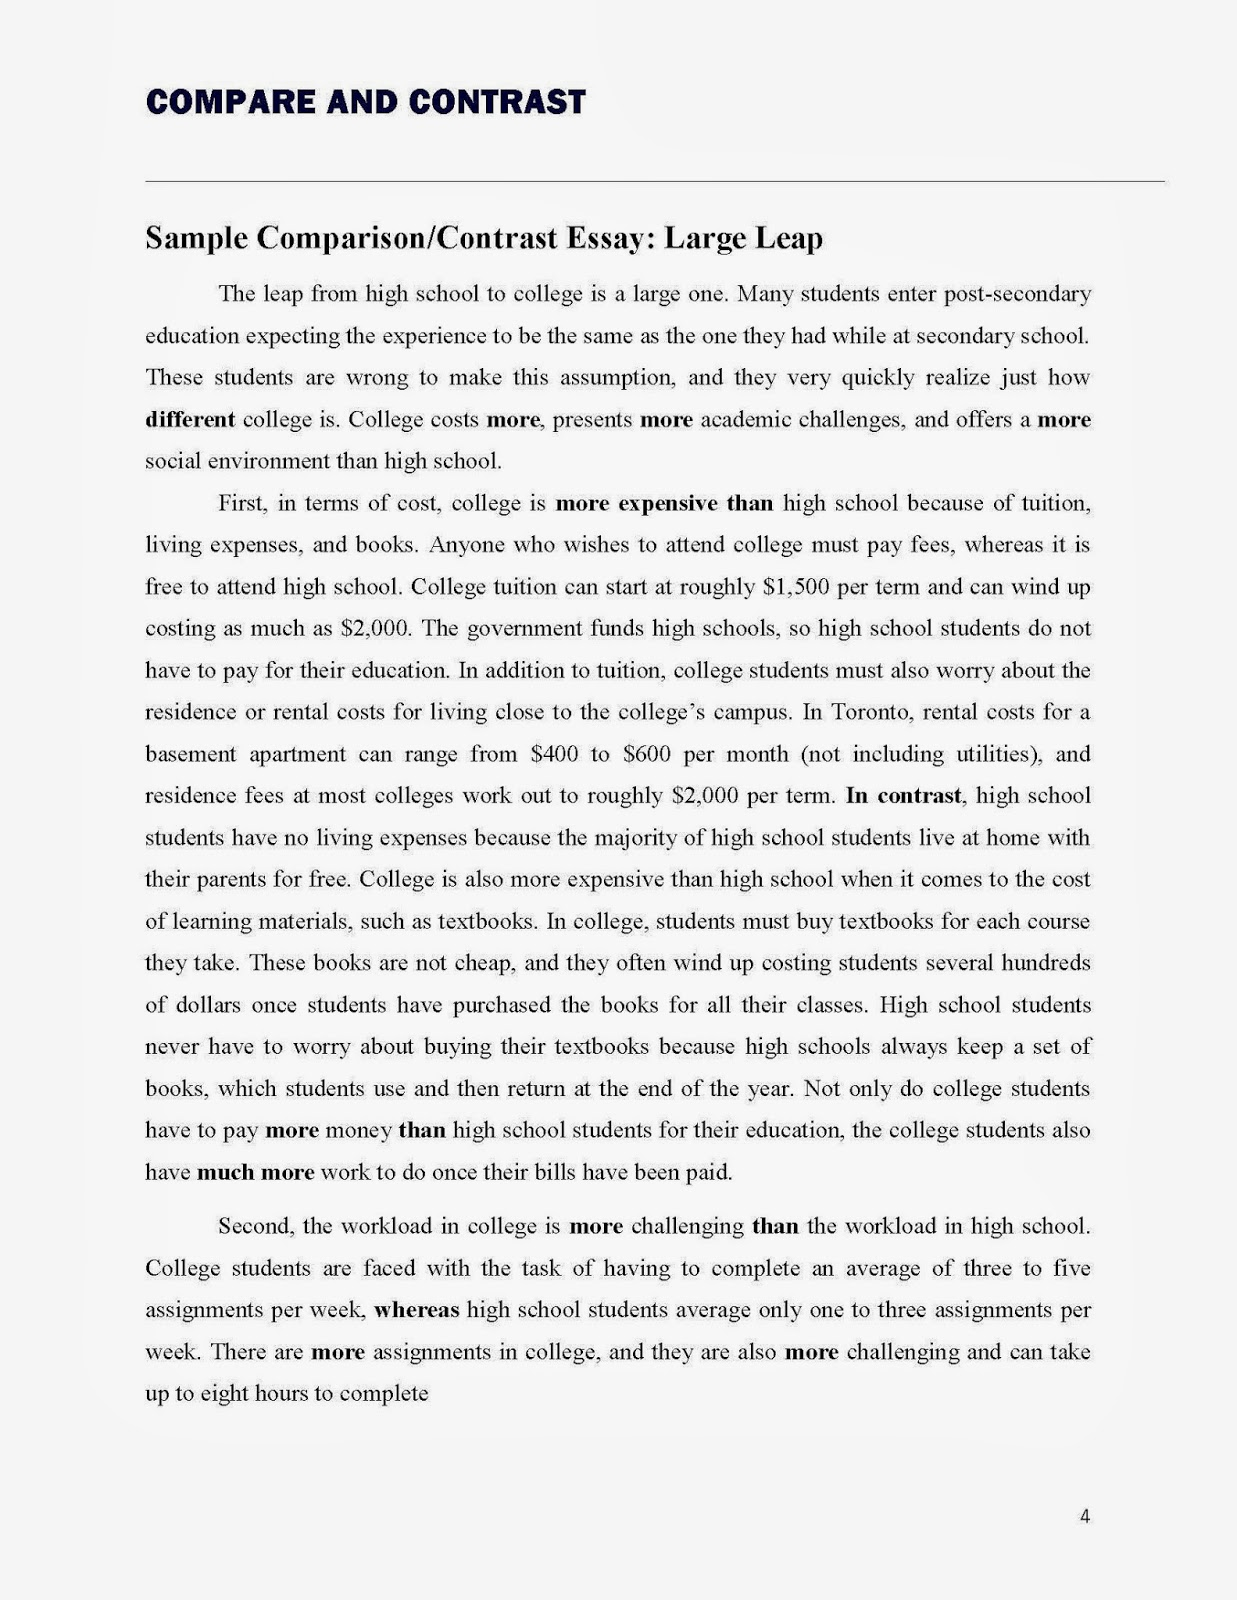 Modest Proposal Essay Ideas Persuasive Essay Topics For High  Proposal Essay Topics Ideas Compare Contrast Essay Prompts Compare Contrast  Essay Writing Compare And Contrast Essay Prompt Liao Ipnodns Rucompare High